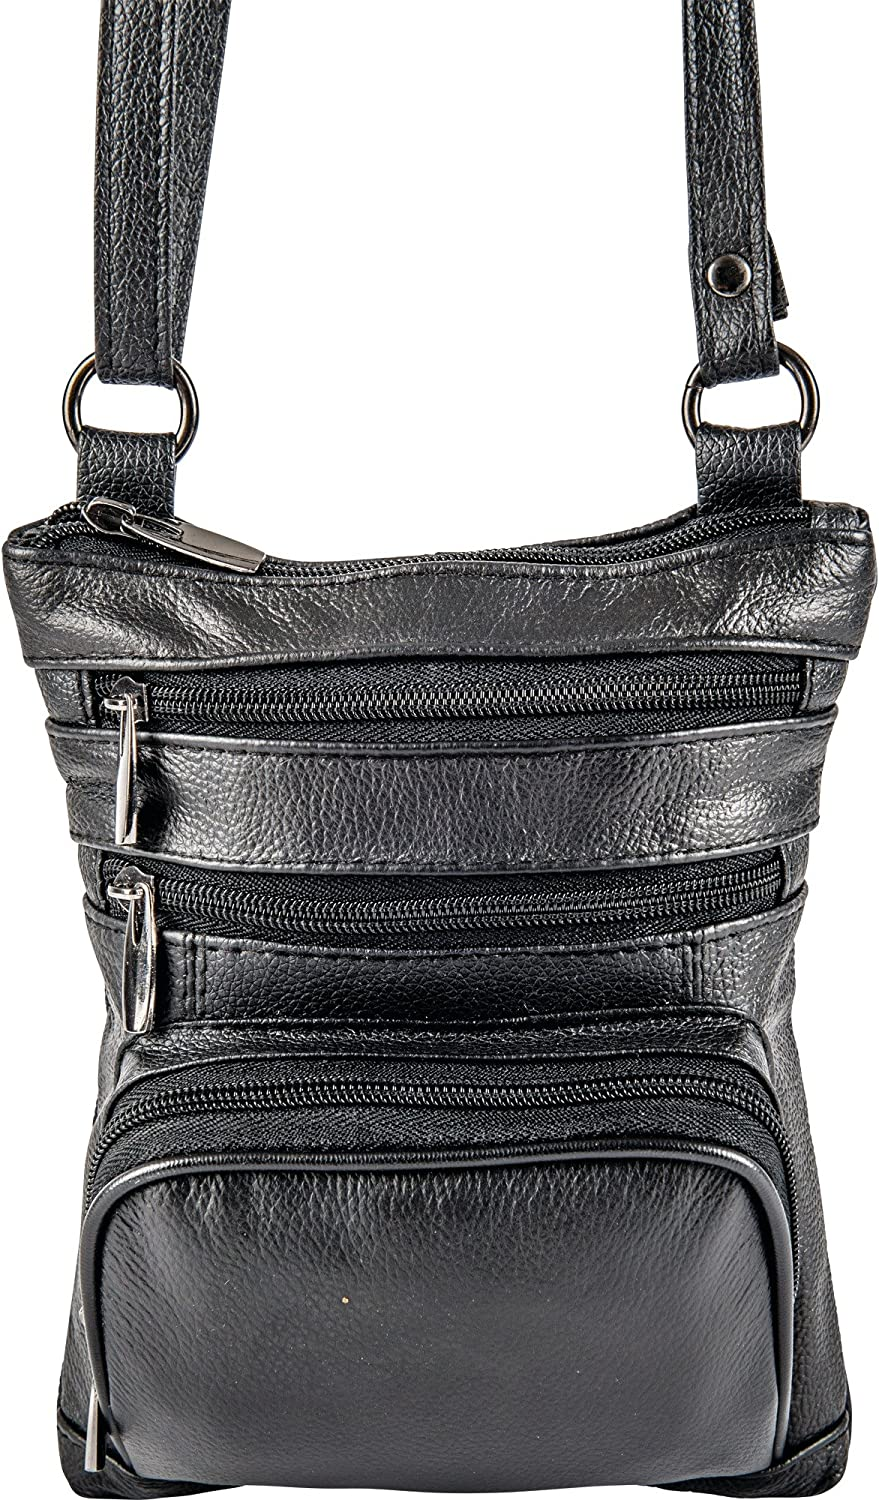 Casual Outfitters Black Ladies Solid Leather Small Shoulder Bag